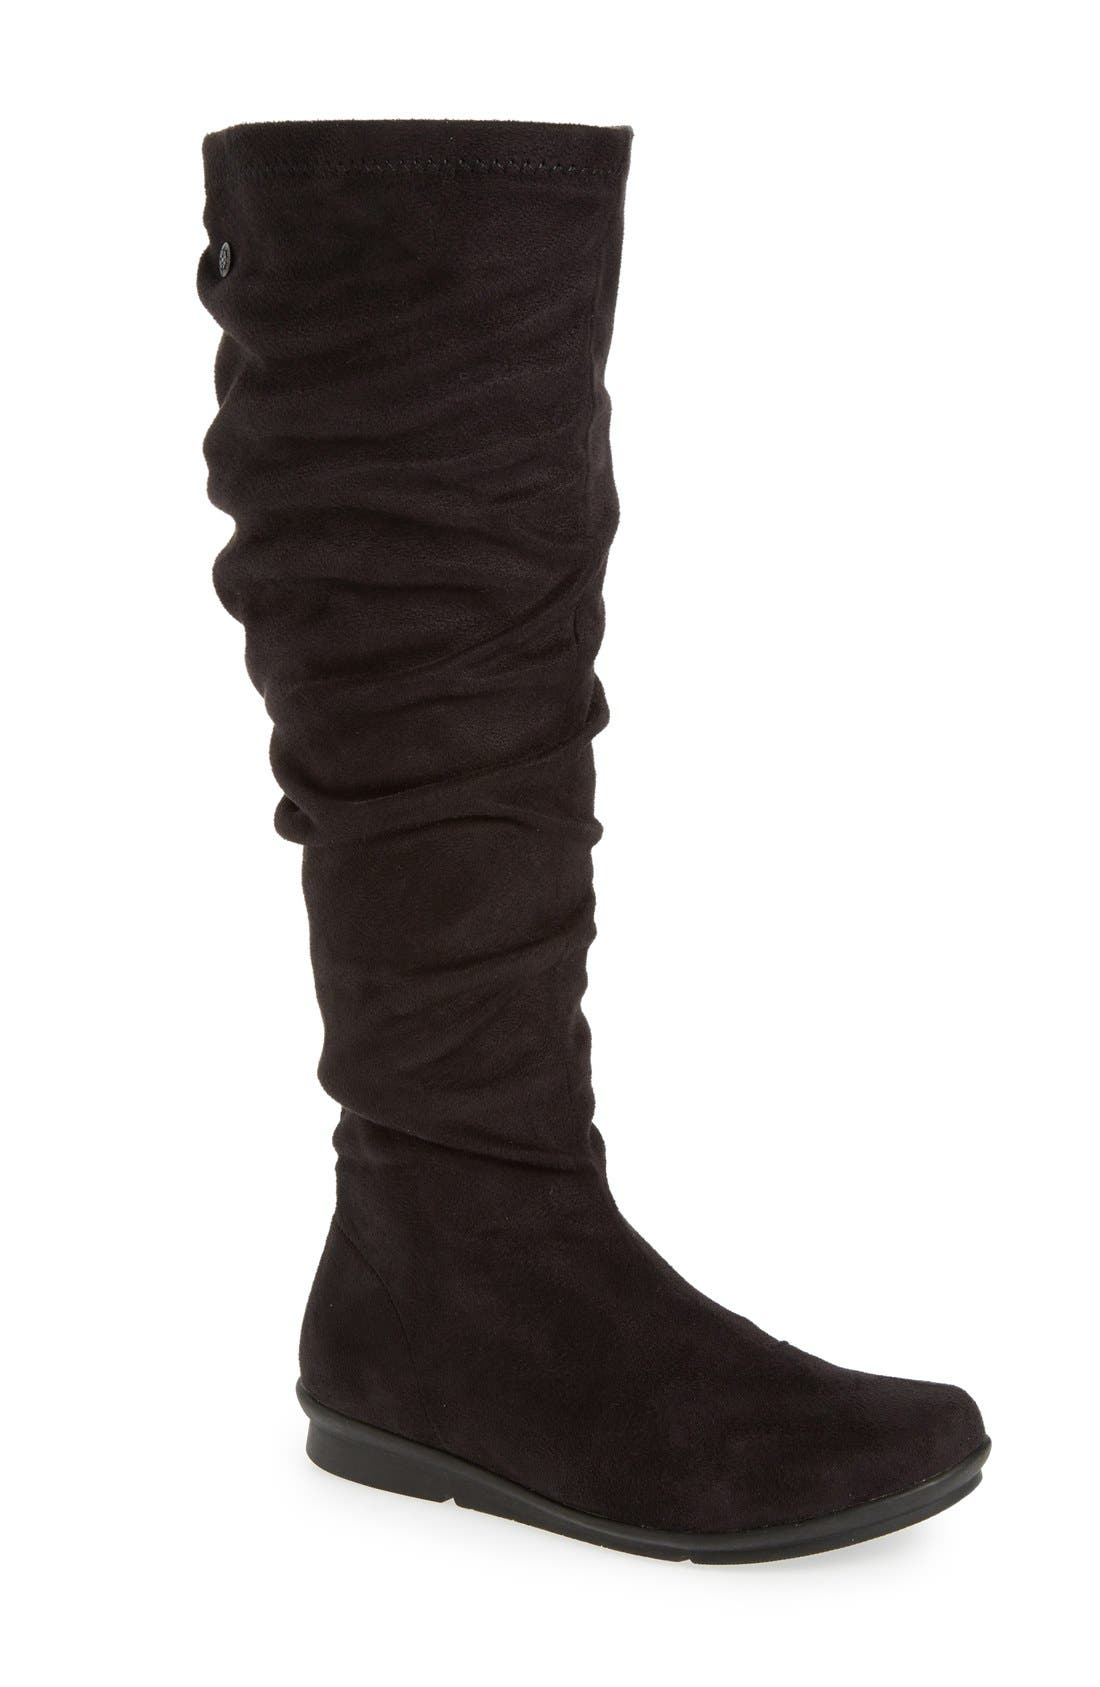 BUSSOLA,                             'Creta' Water Resistant Slouchy Knee-High Boot,                             Main thumbnail 1, color,                             001